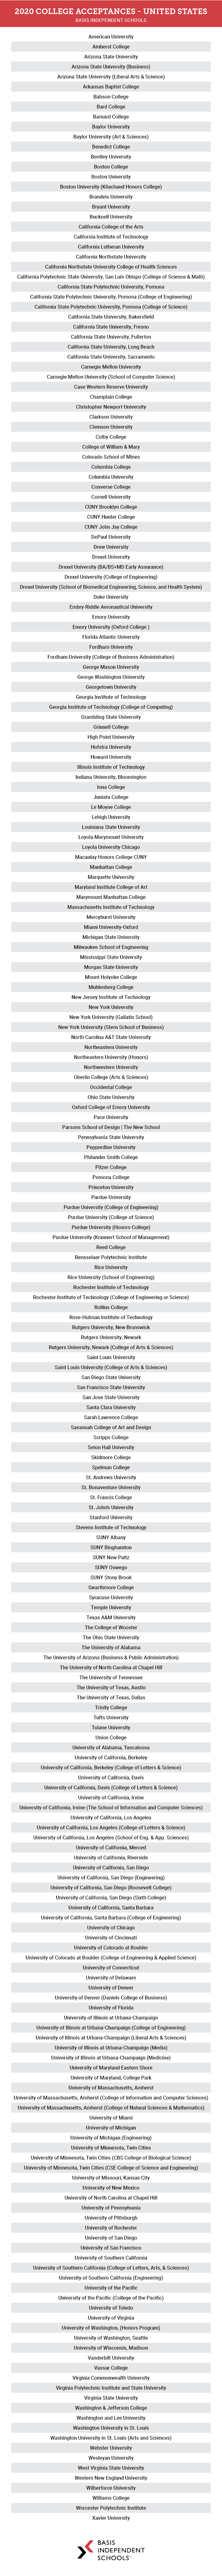 BINS College Acceptances U.S.